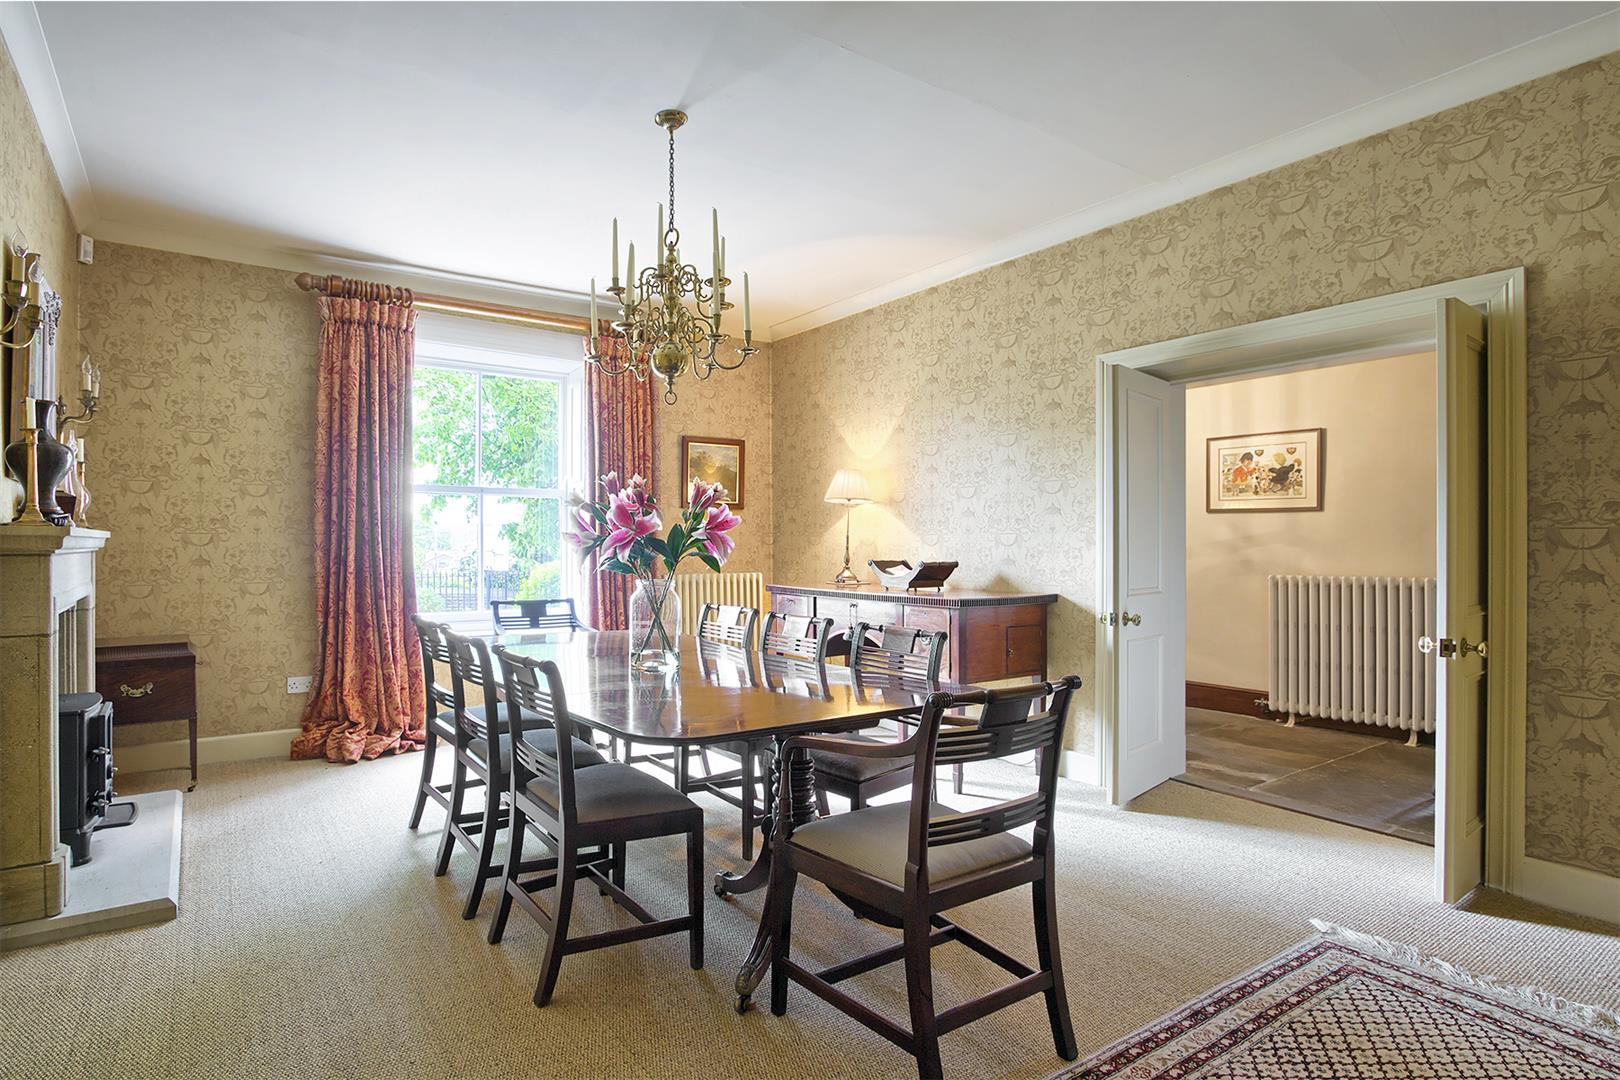 5 bedroom detached house For Sale in Bolton - dining room.png.